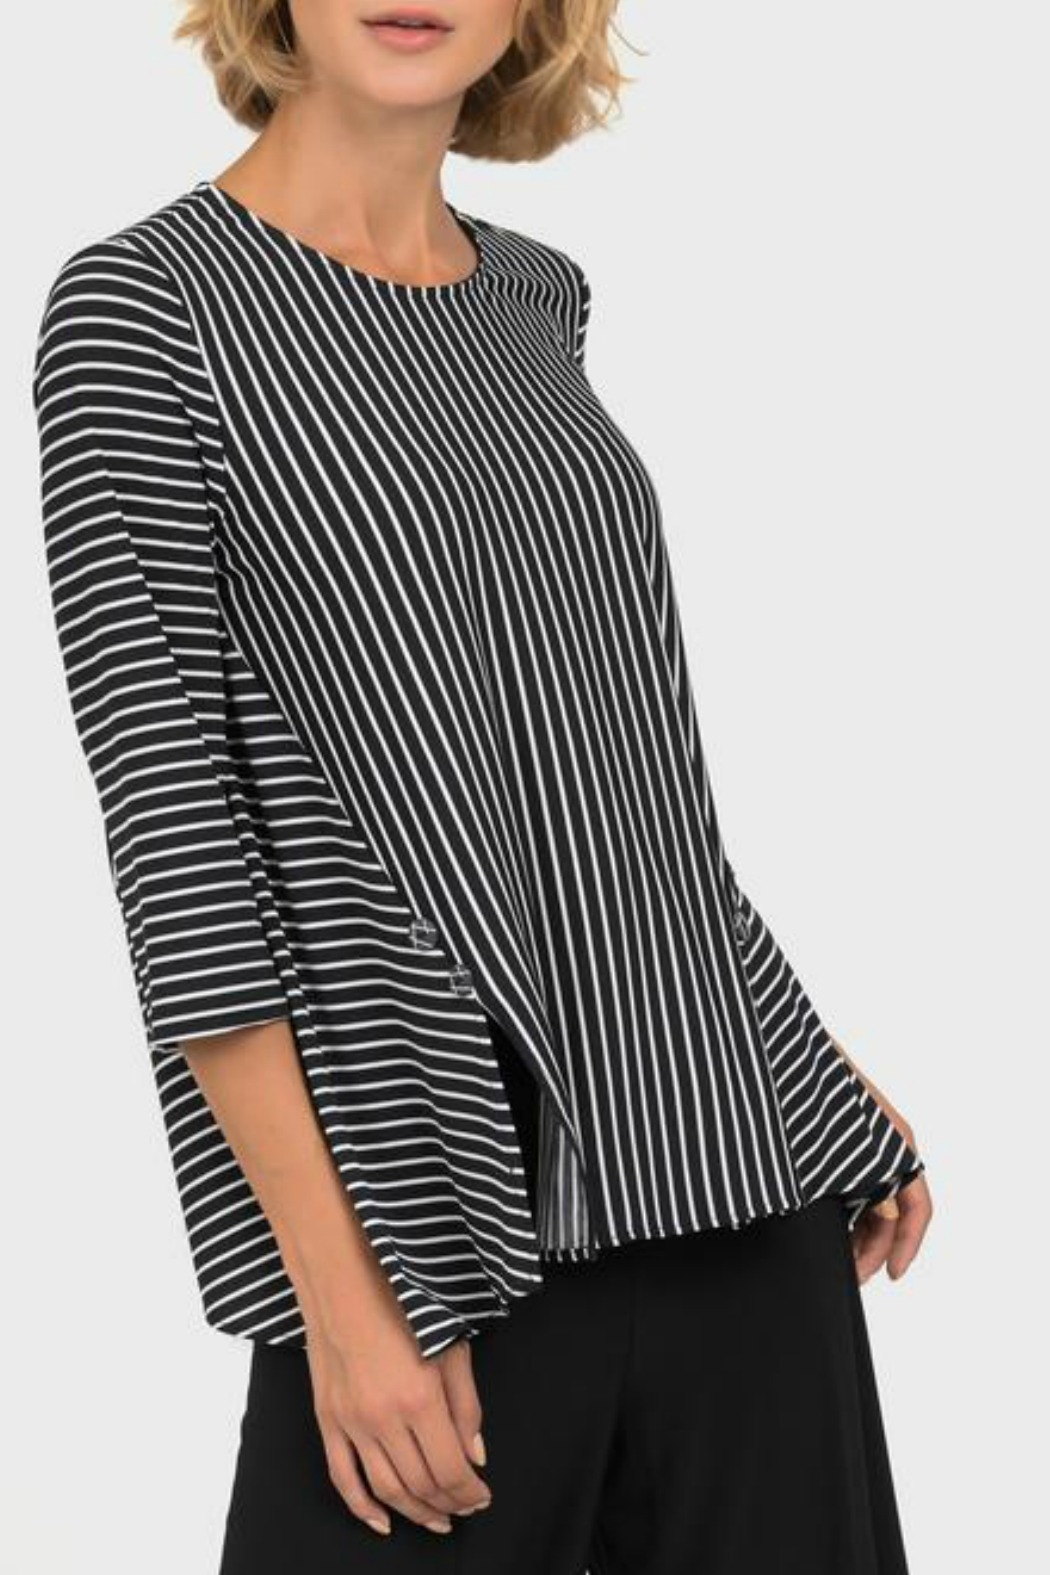 Joseph Ribkoff USA Inc. Black + White Stripe Top - Main Image